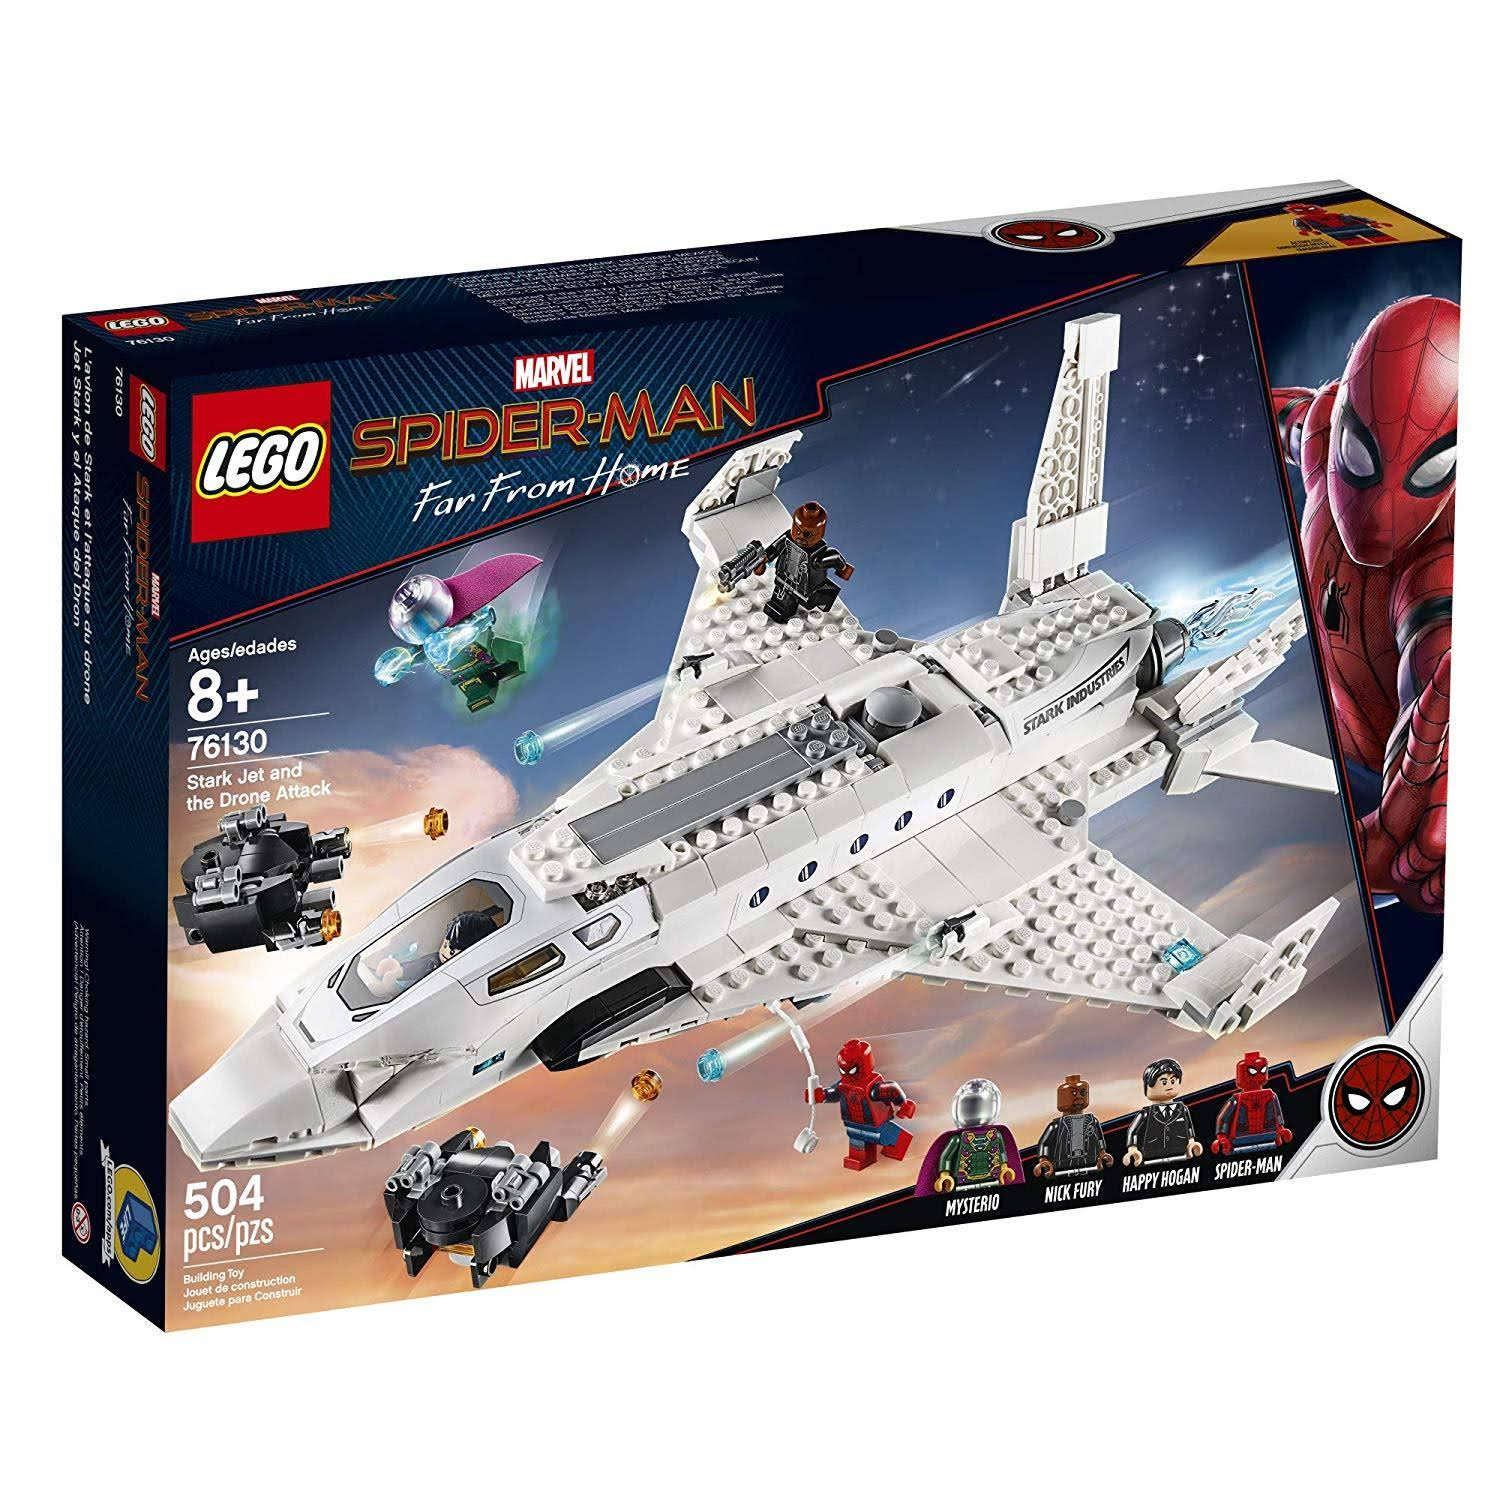 Lego Marvel Spider-Man Stark Jet and The Drone Attack 76130